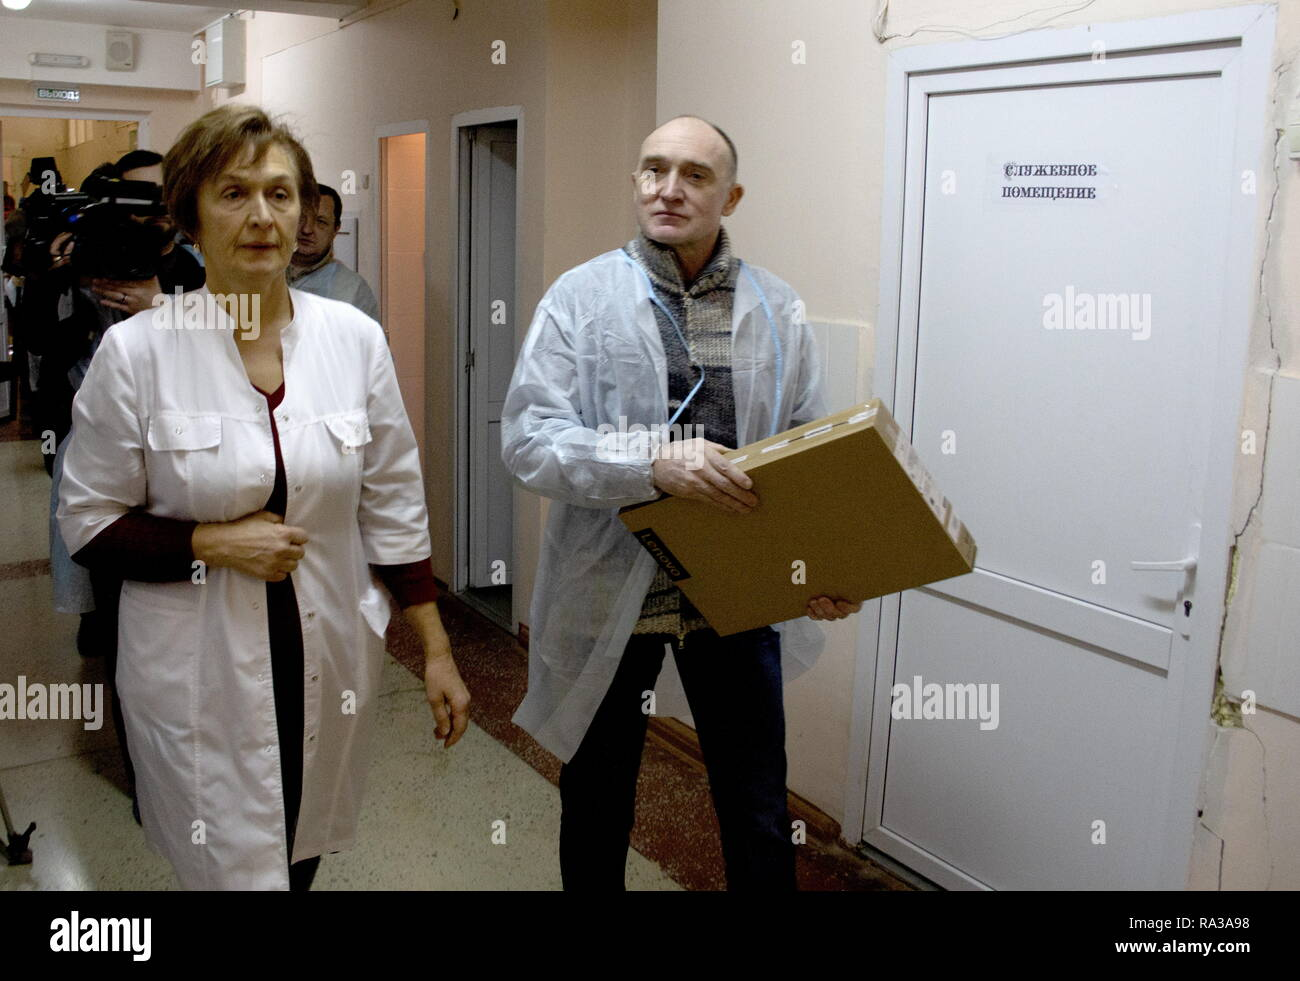 Magnitogorsk, Russia. 01st Jan, 2019. MAGNITOGORSK, RUSSIA - JANUARY 1, 2019: Chelyabinsk Region Governor Boris Dubrovsky (R) visits people injured in an apartment block collapse at a hospital. On December 31, 2018, a domestic gas explosion caused a partial collapse of a residential building at 164 Prospekt Karla Marksa Street killing eight people and leaving dozens missing. Ilya Moskovets/TASS Credit: ITAR-TASS News Agency/Alamy Live News - Stock Image